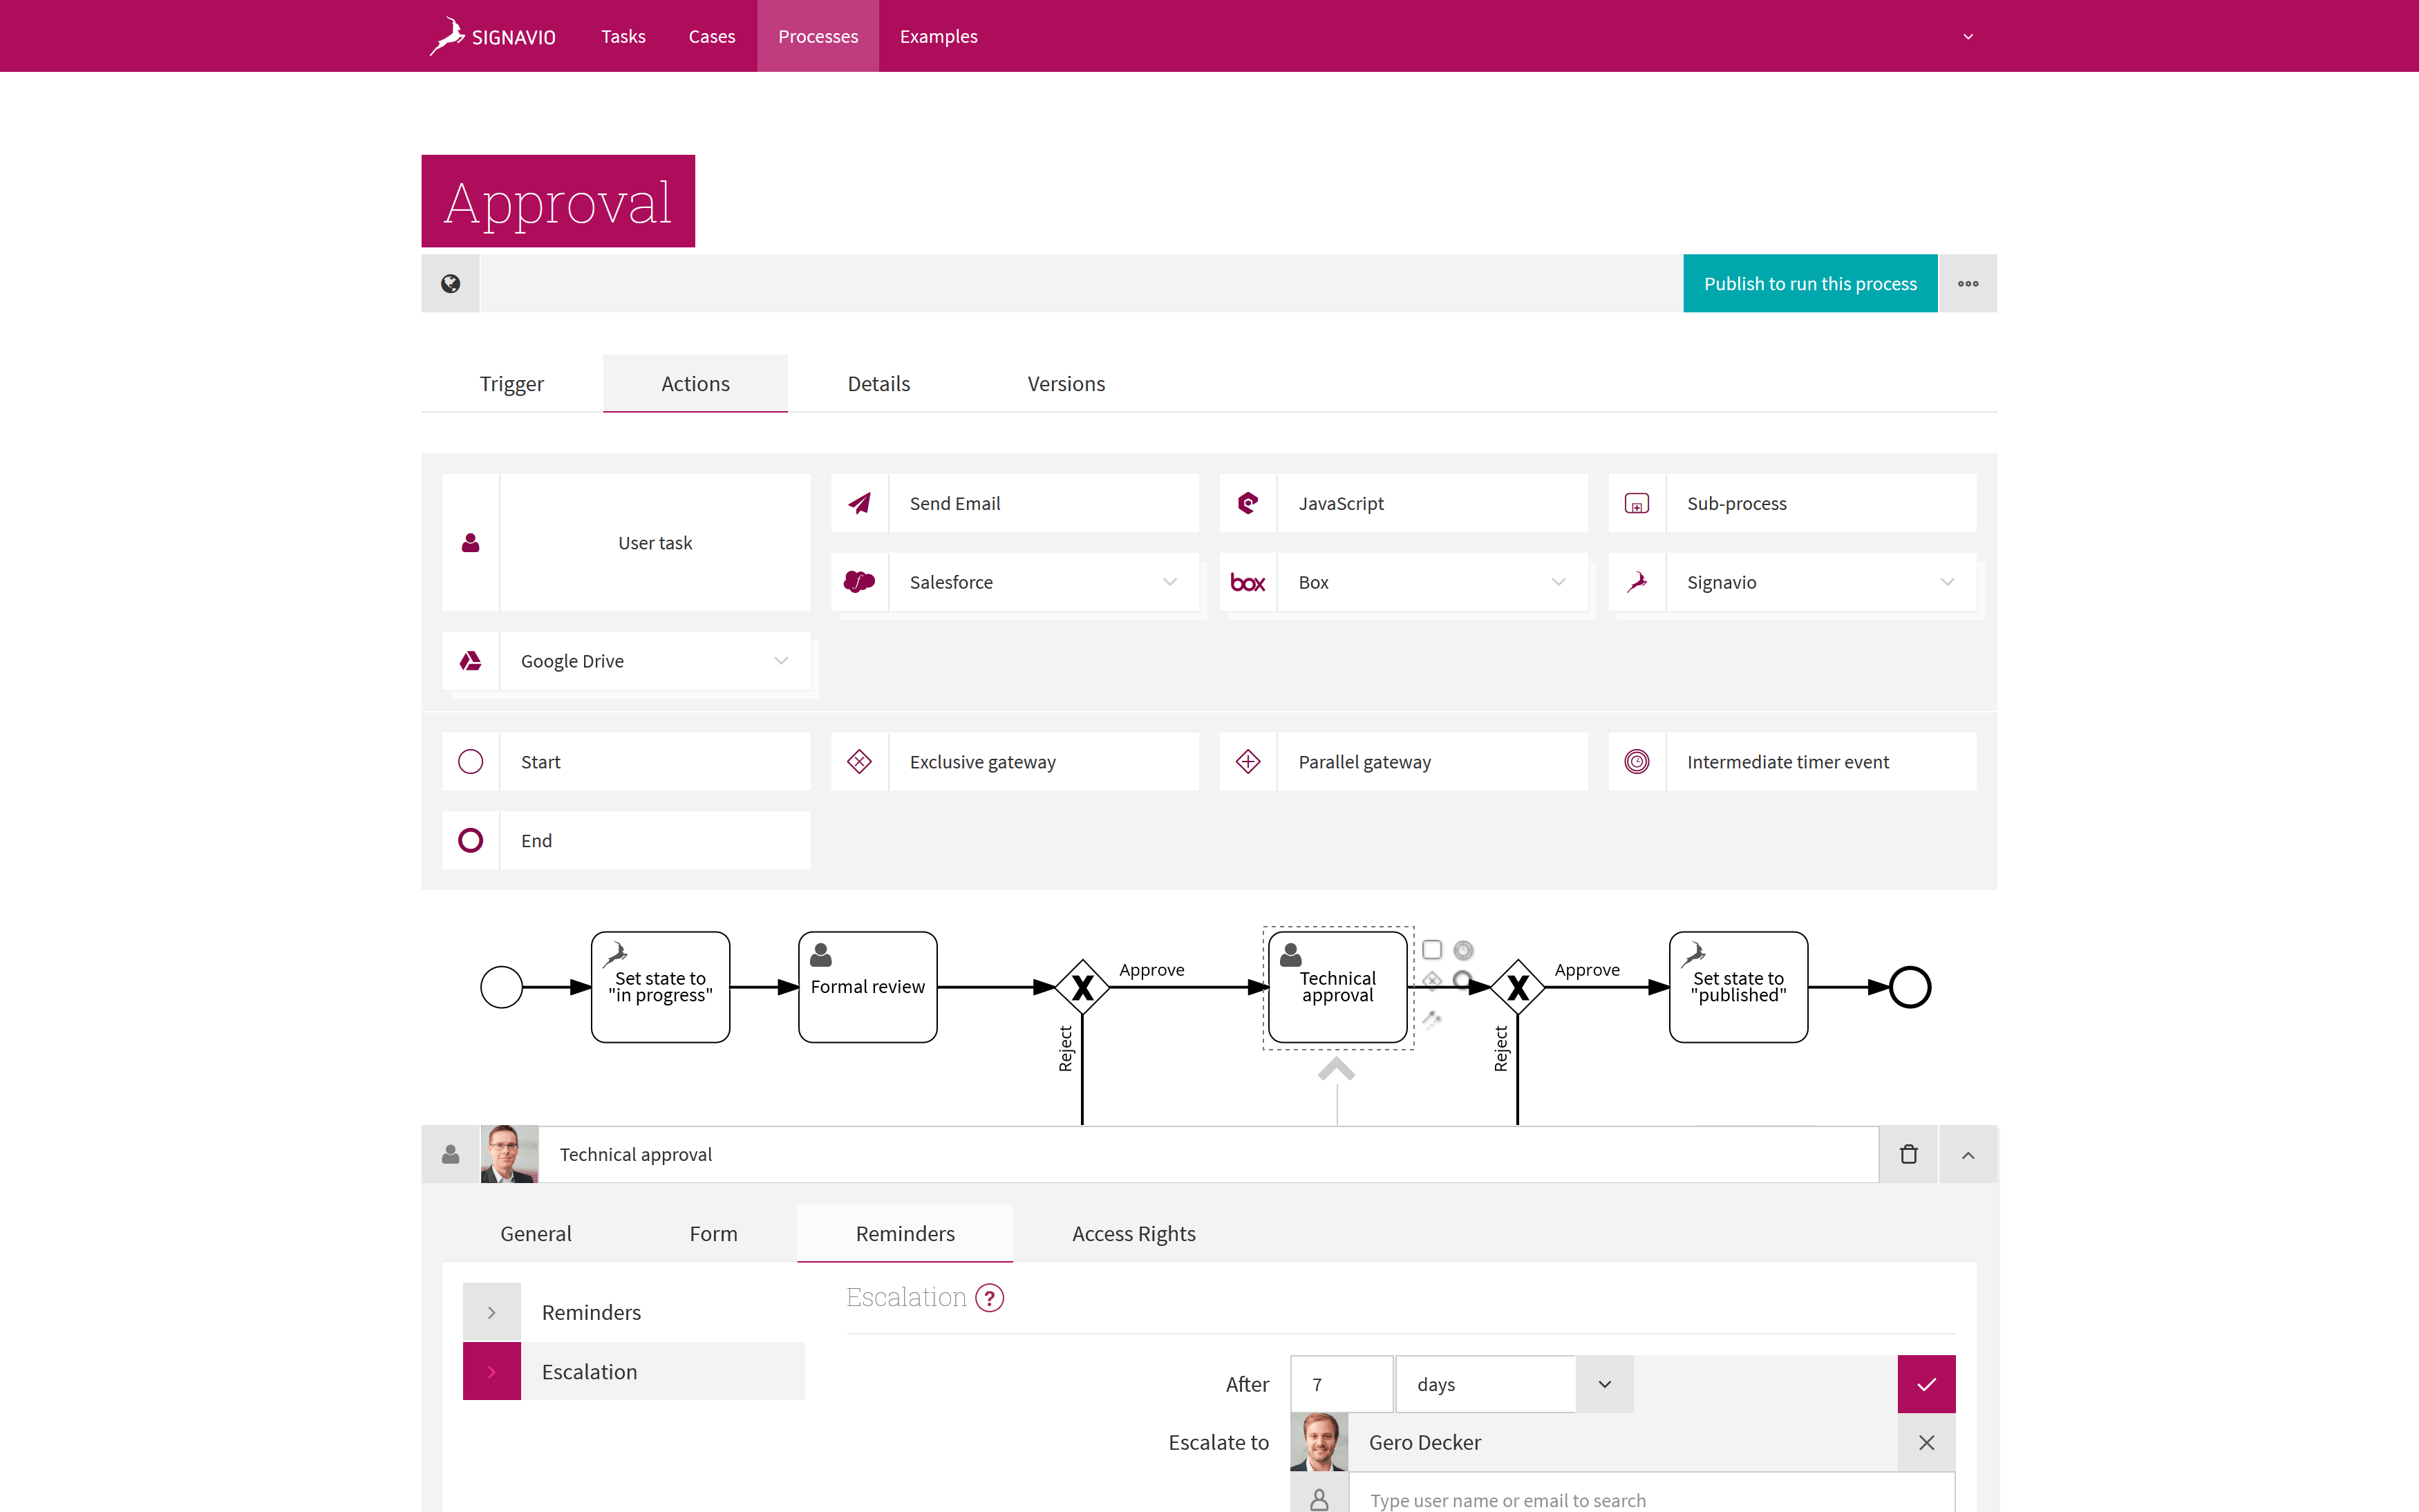 Approval Workflow - Signavio Process Editor Screenshot